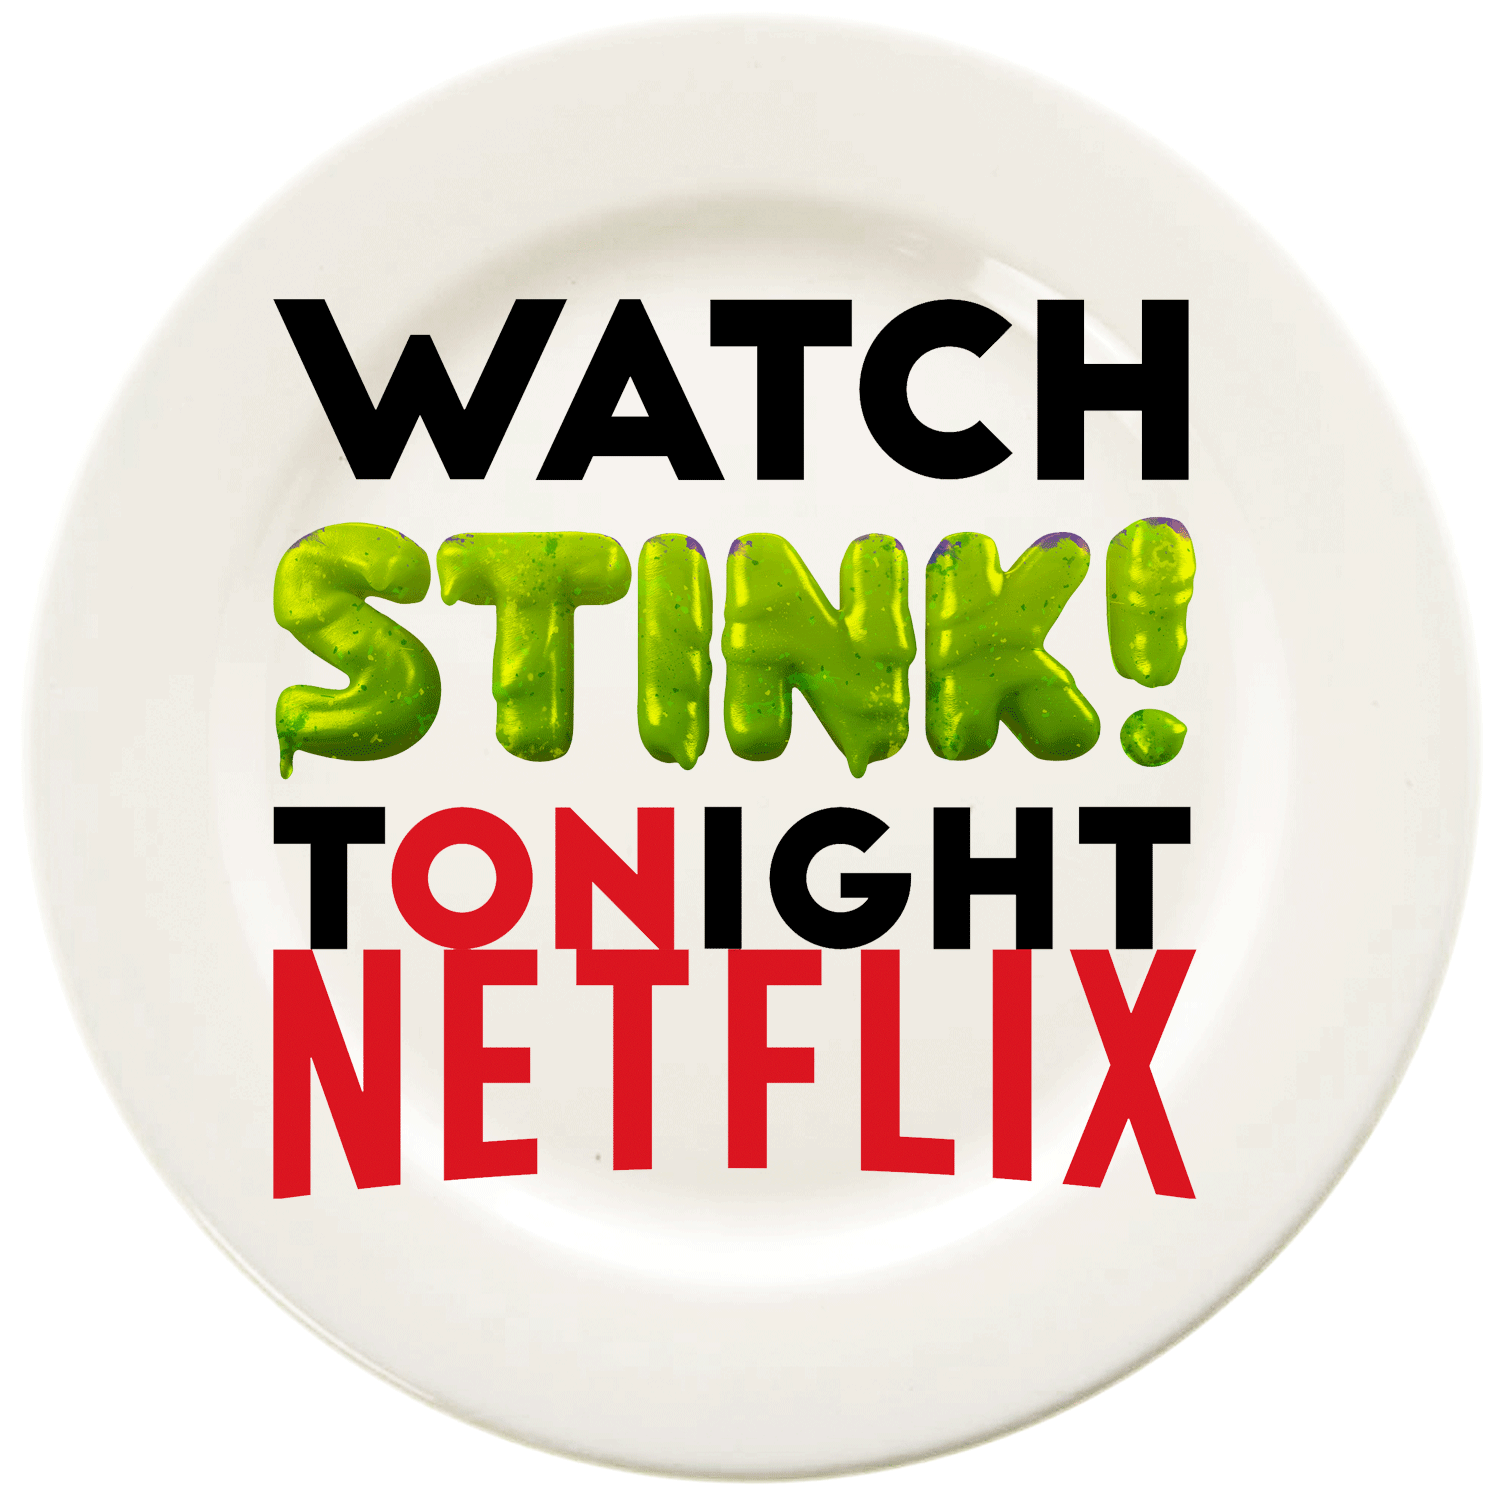 WATCH-STINK-dinnerplate.png